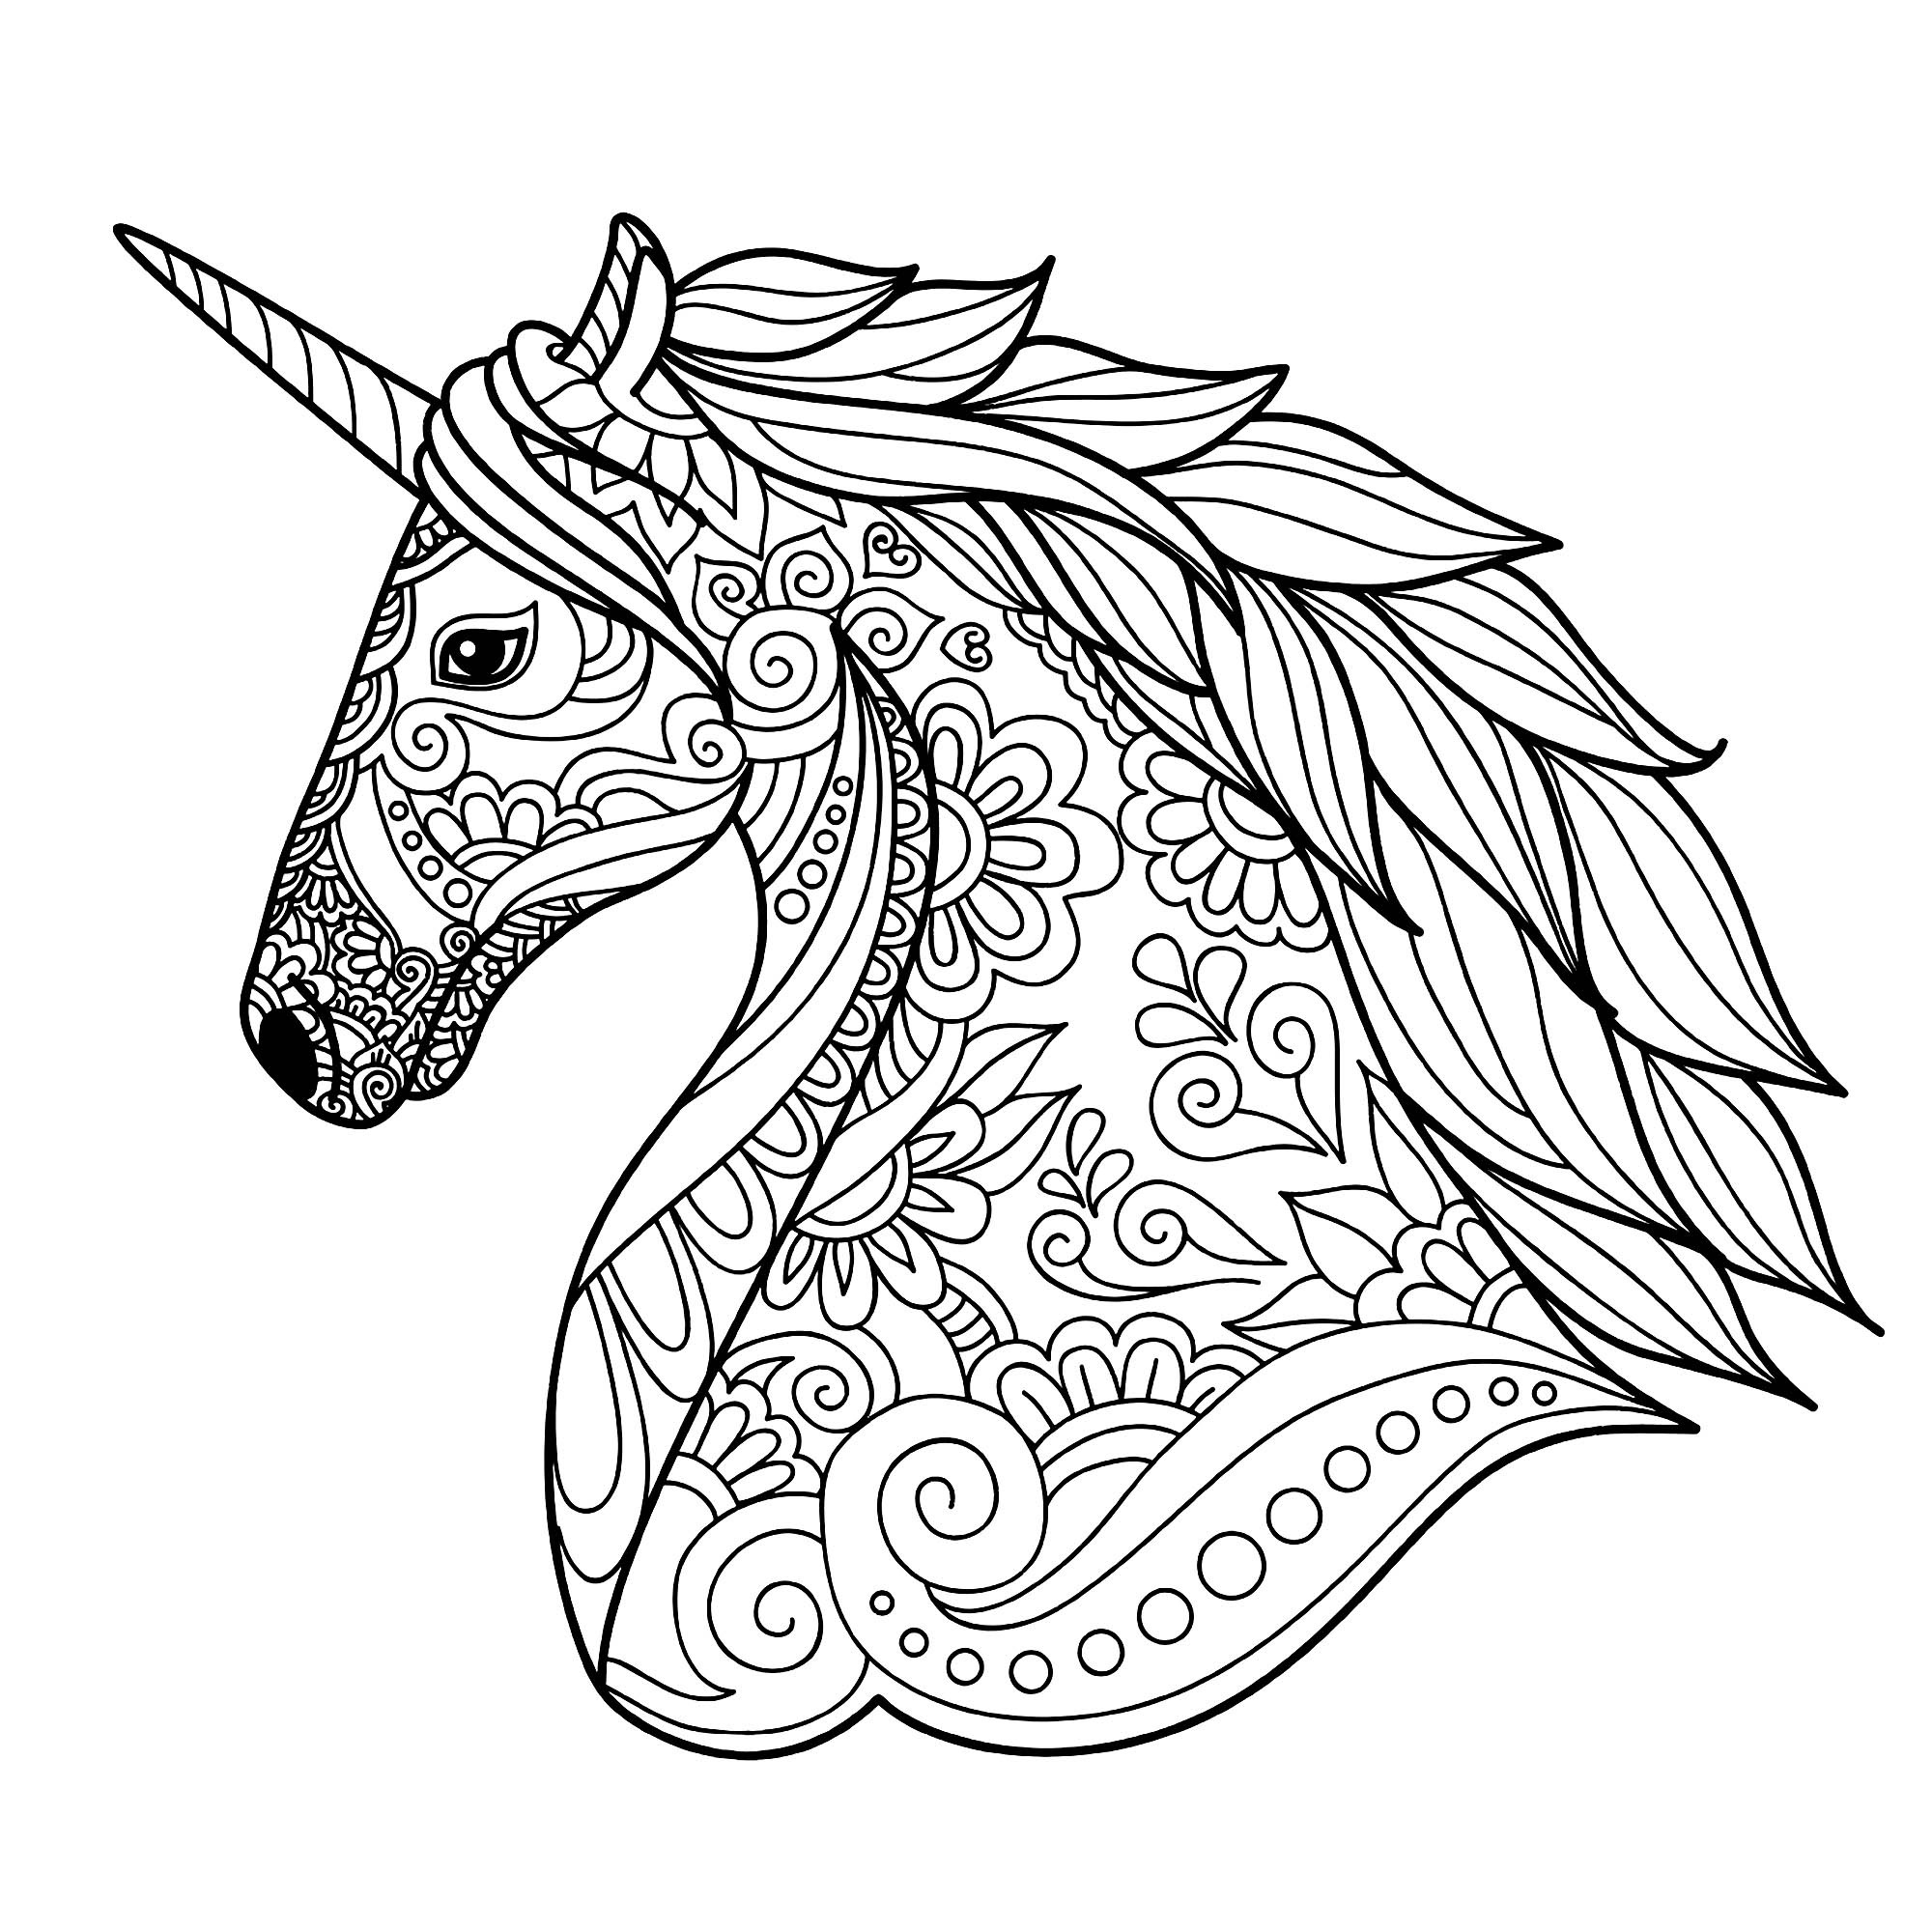 unicorn color page unicorn coloring pages to download and print for free color unicorn page 1 1